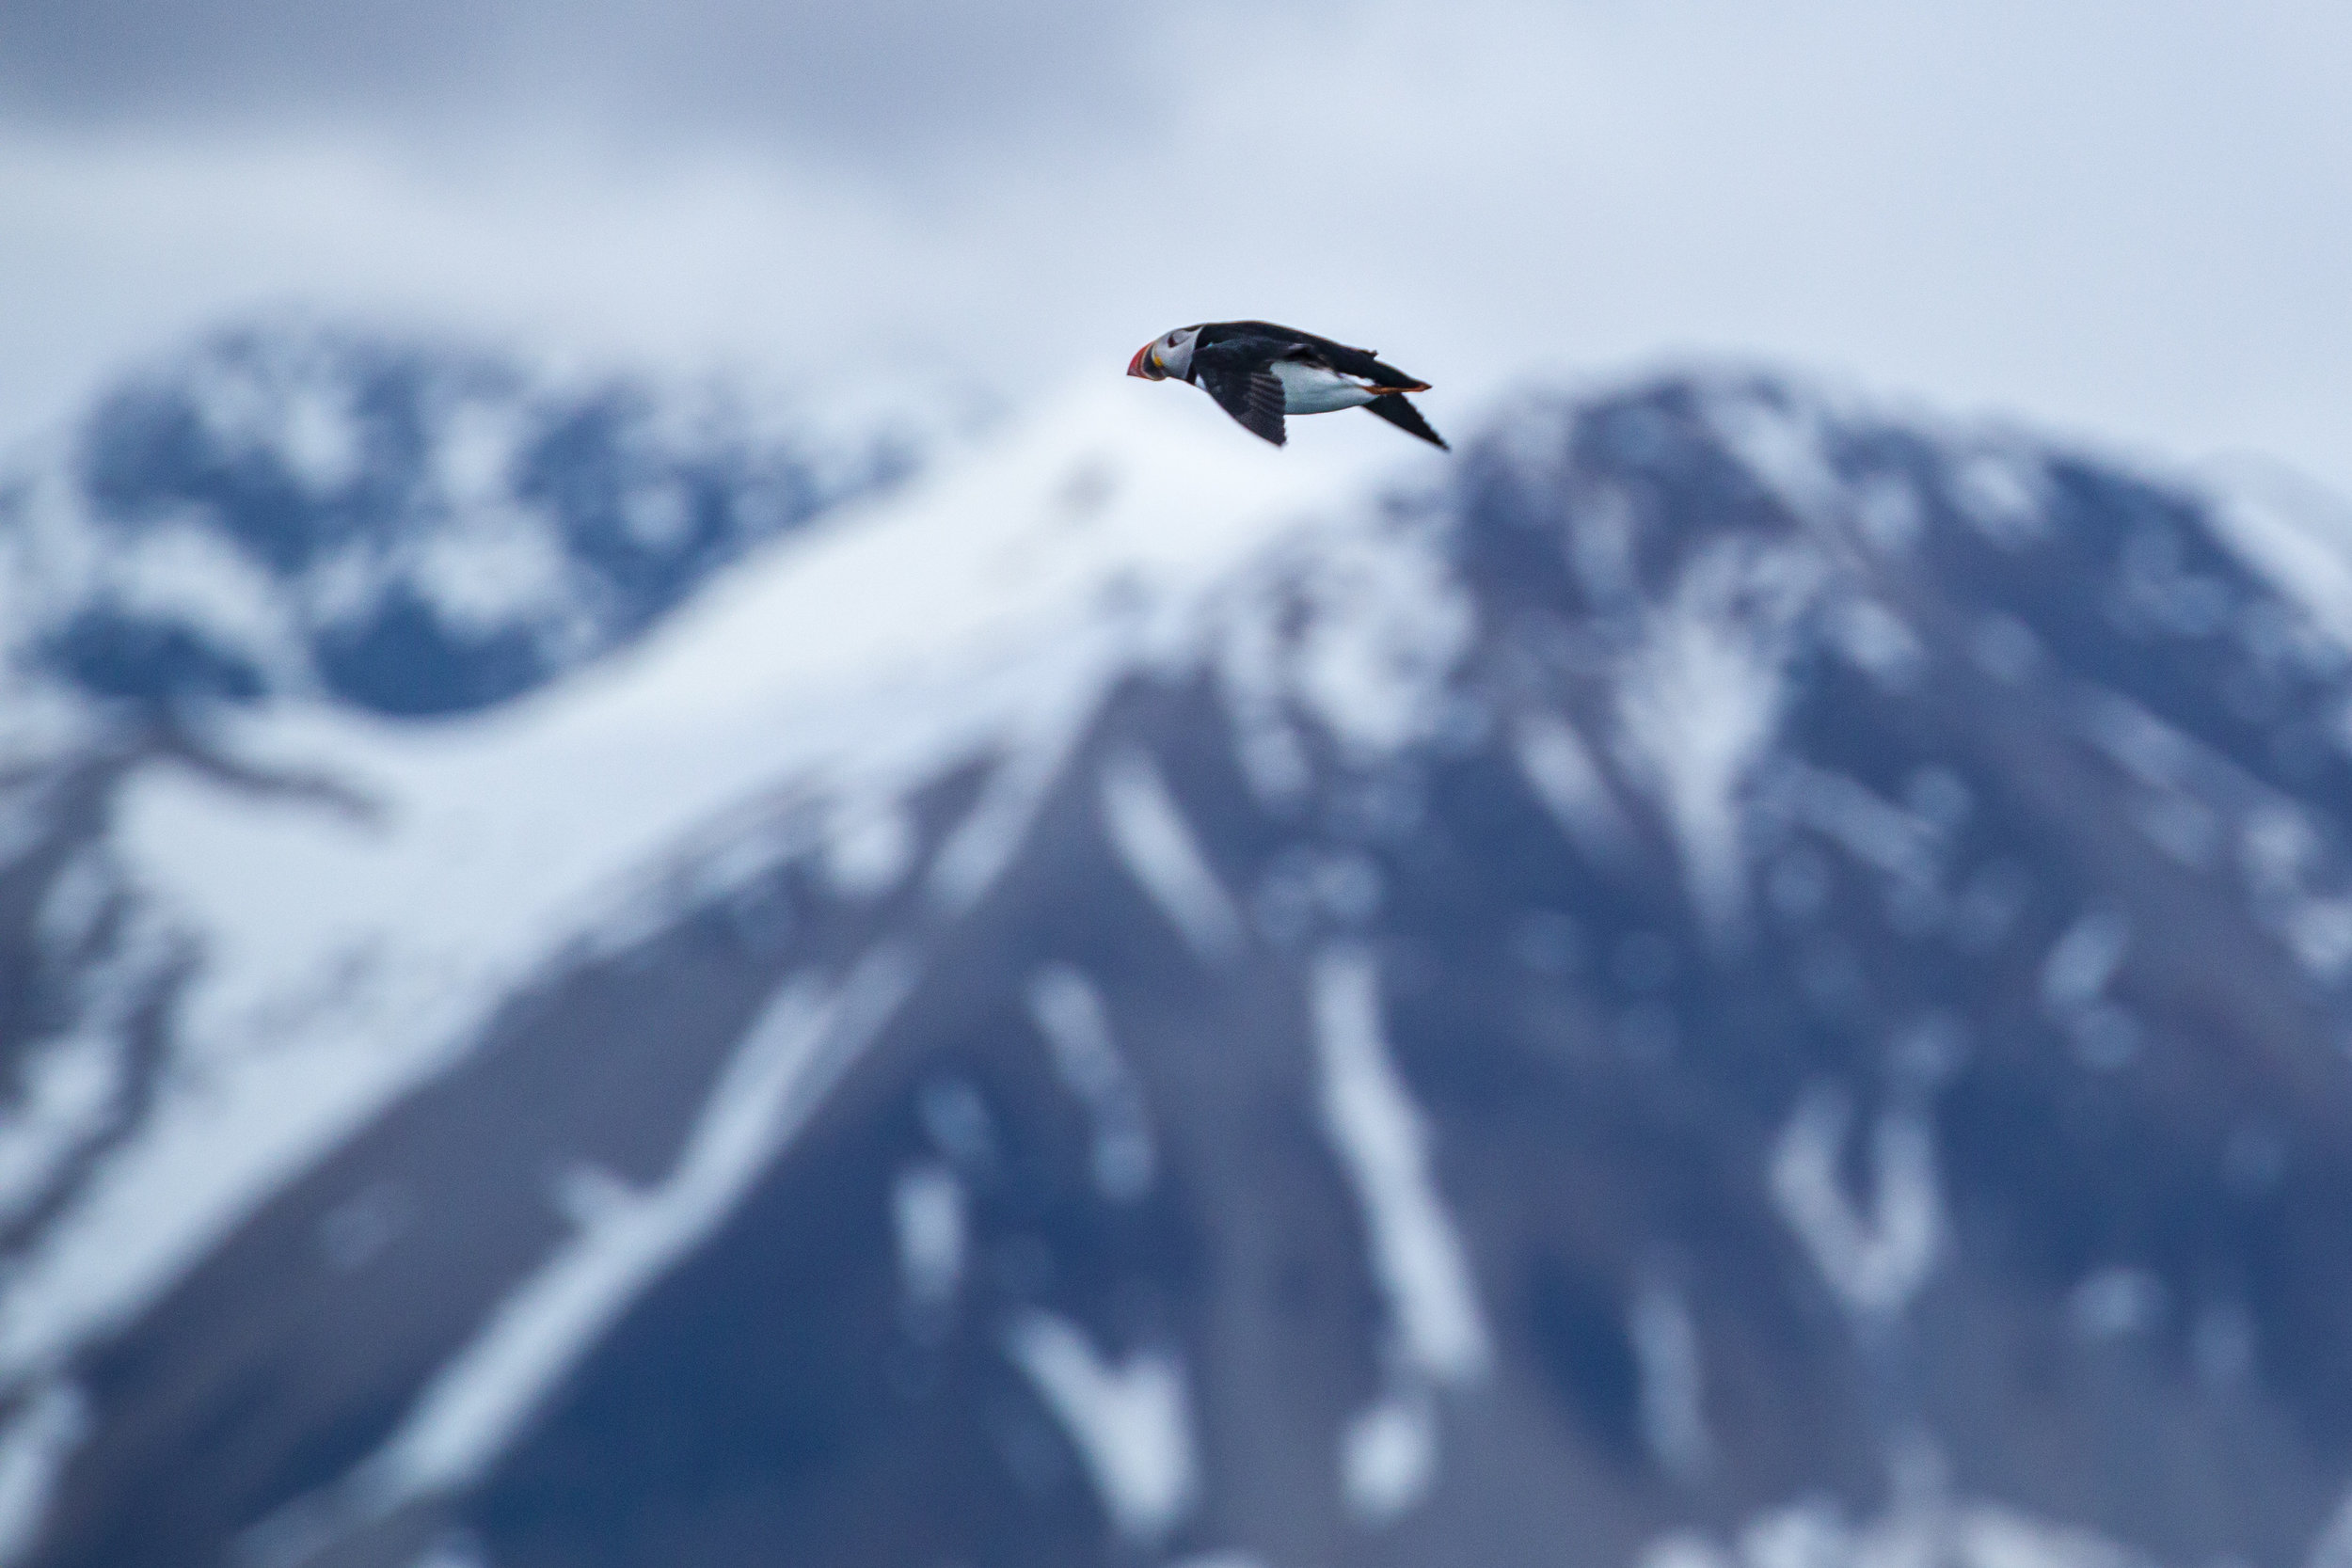 Vliegende puffin in Spitsbergen, foto door Peter Vancoillie, Puffins expeditie 2018